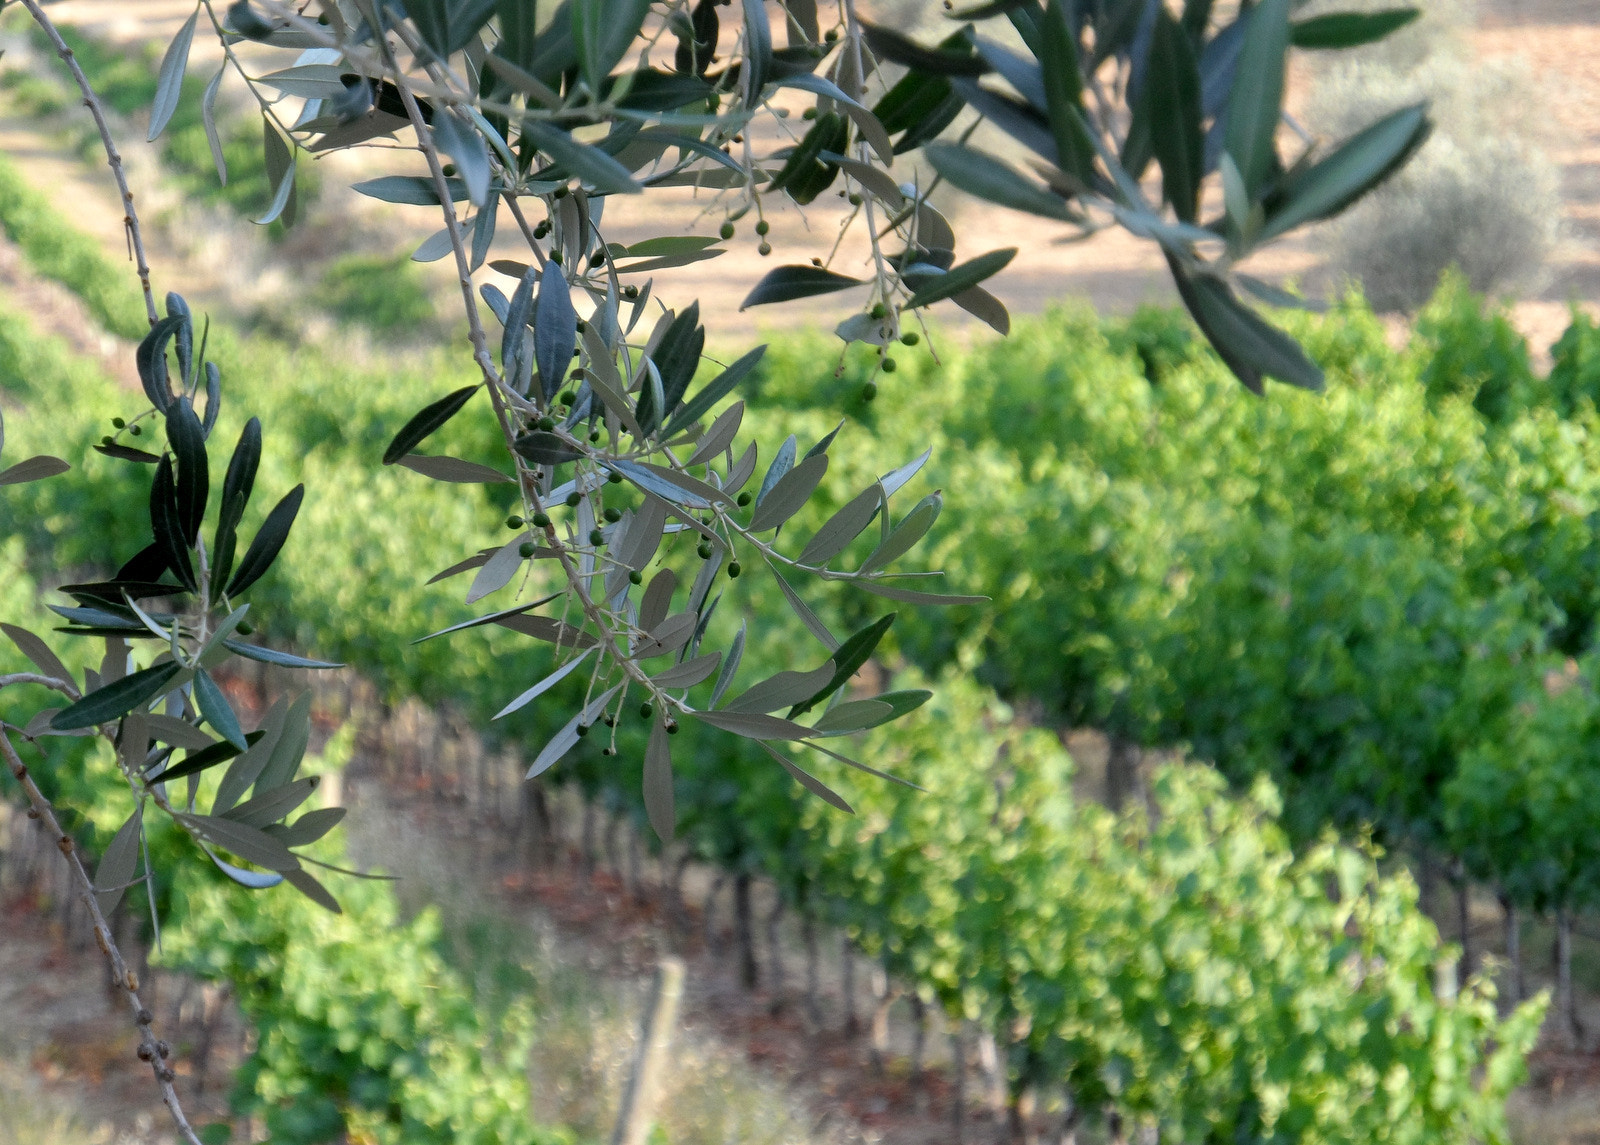 Photograph Olives and Grapes by Debora M on 500px